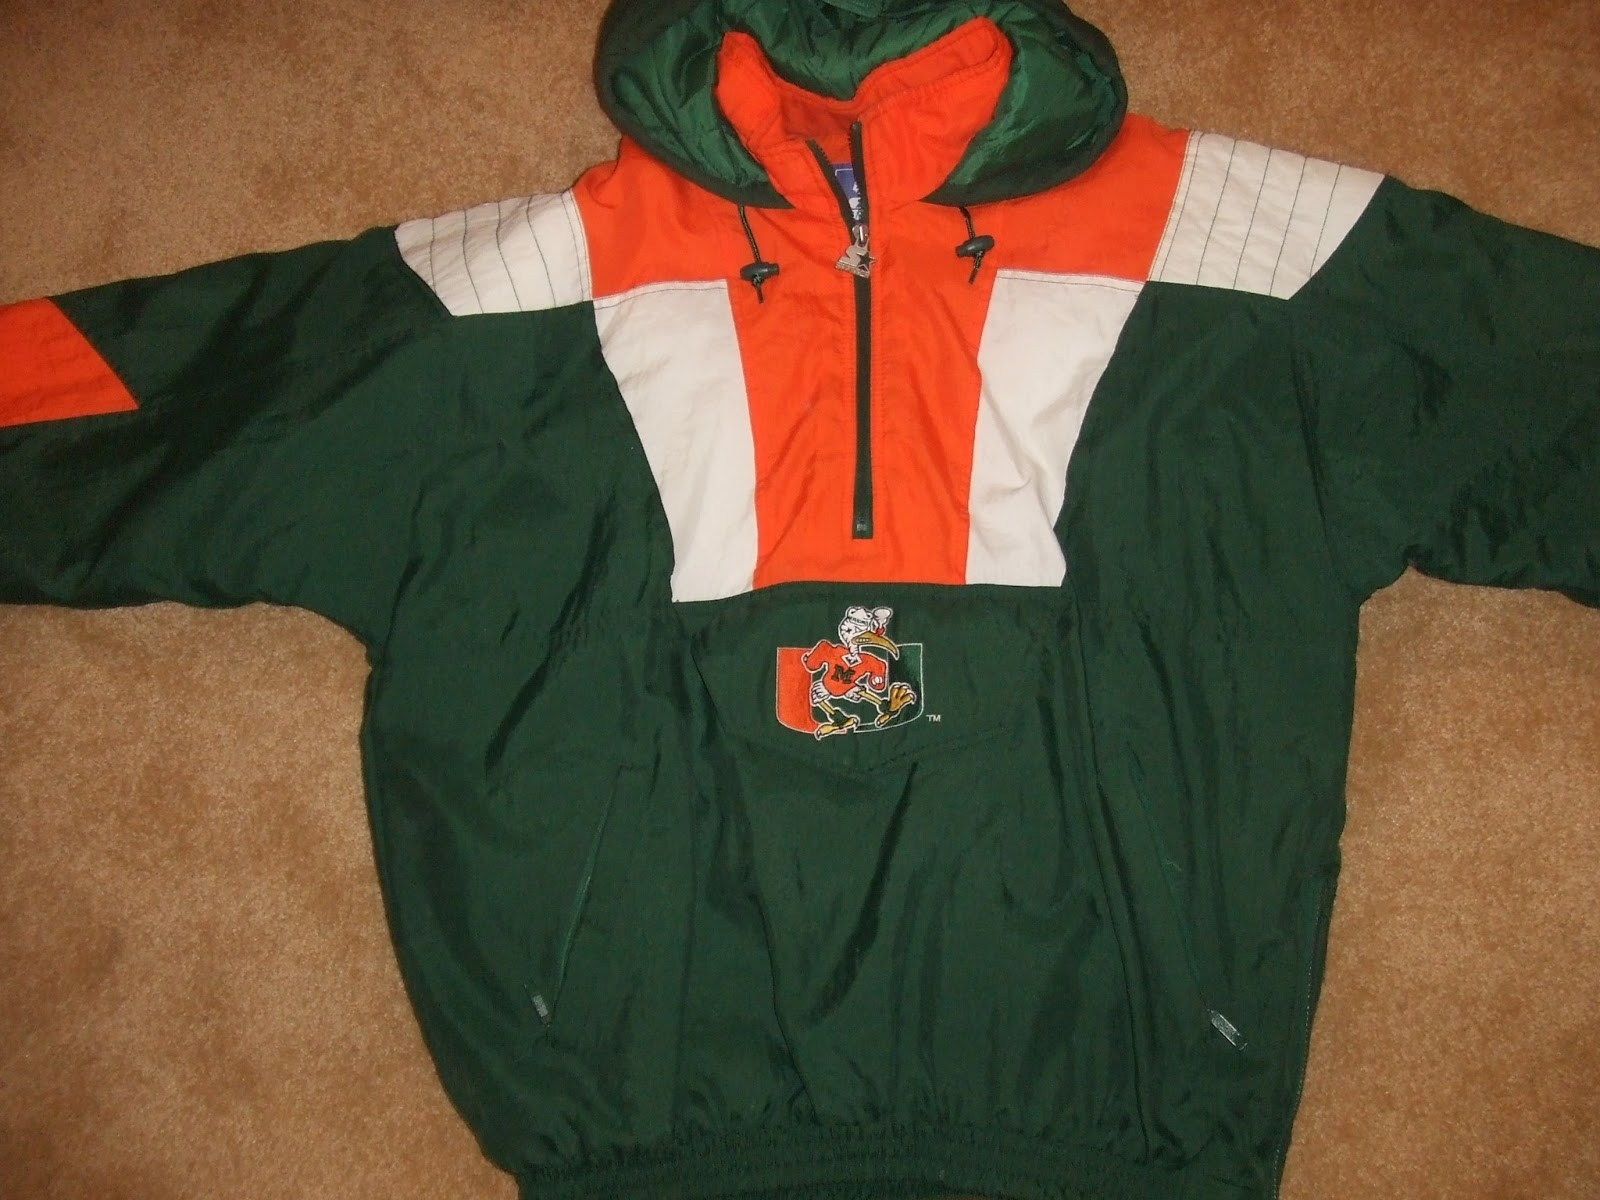 Vintage Miami Hurricanes Starter Jacket together with 79645636 furthermore ment Page 1 likewise 11 Spectacular Ex les Modern Garage Lighting also 291245595684. on old carolina panthers